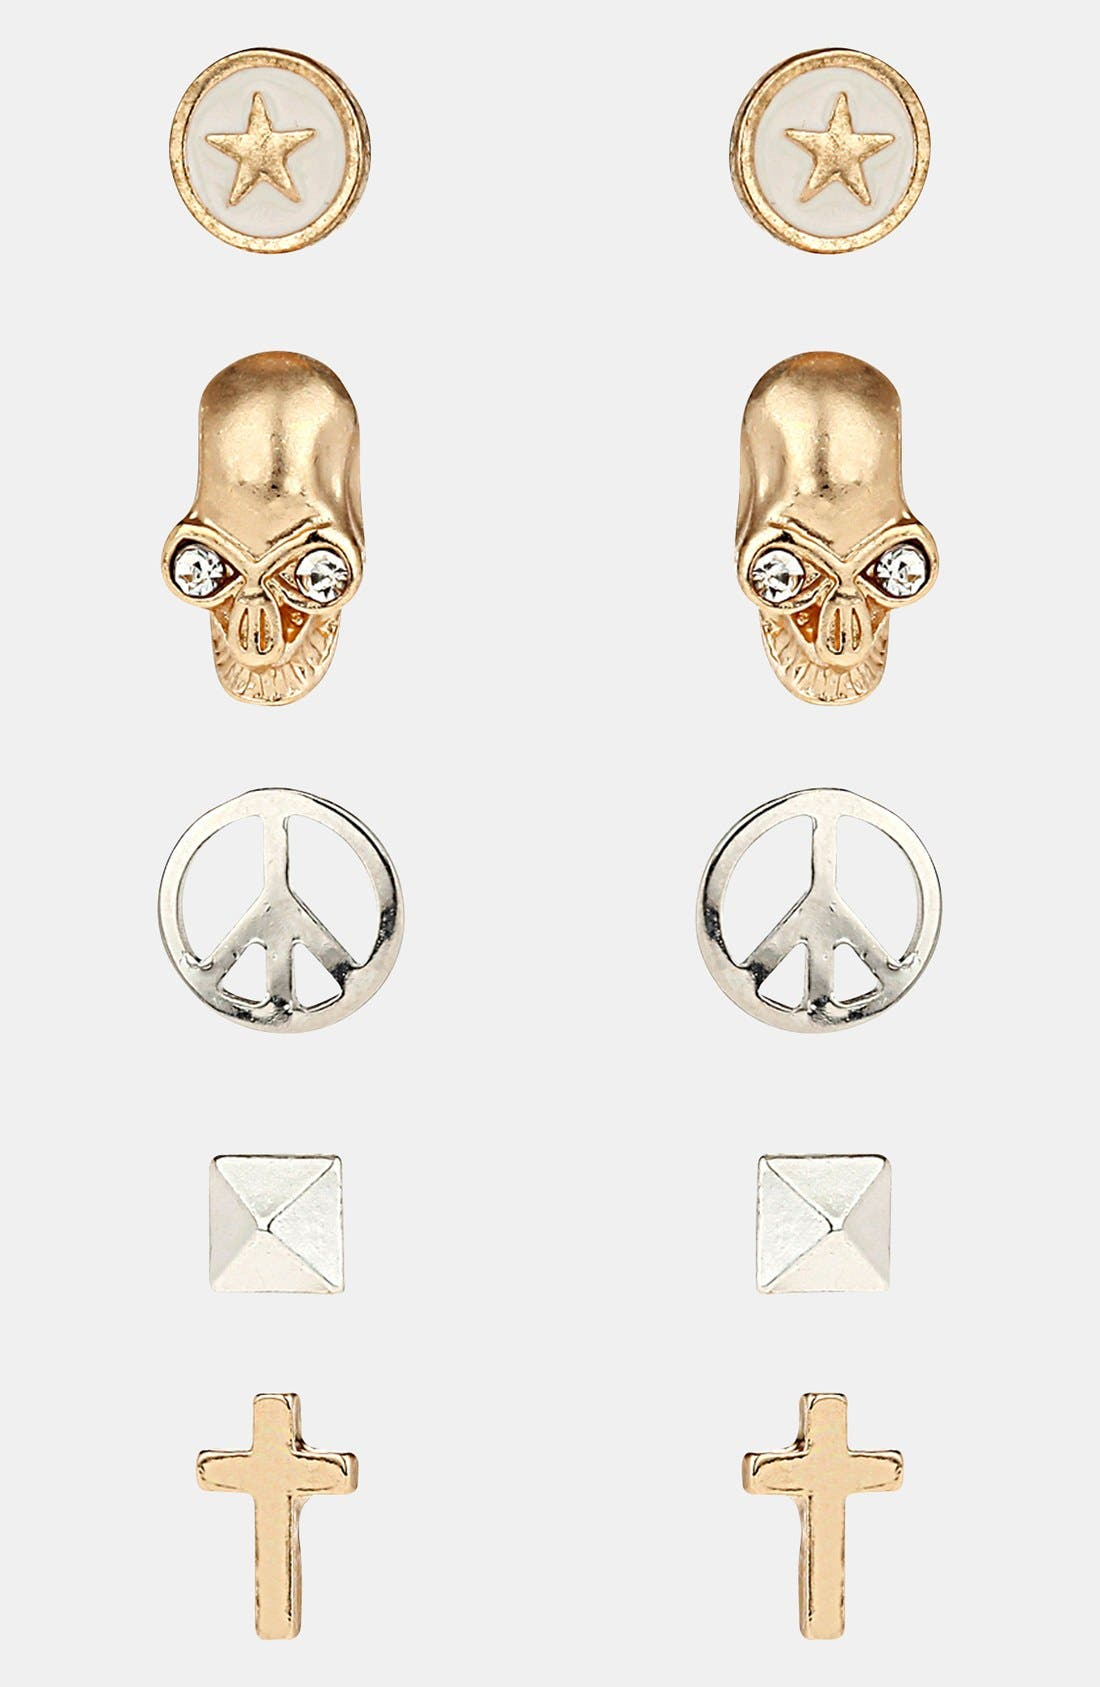 Alternate Image 1 Selected - Topshop 'Skull/Star/Cross' Stud Earrings (Set of 5)